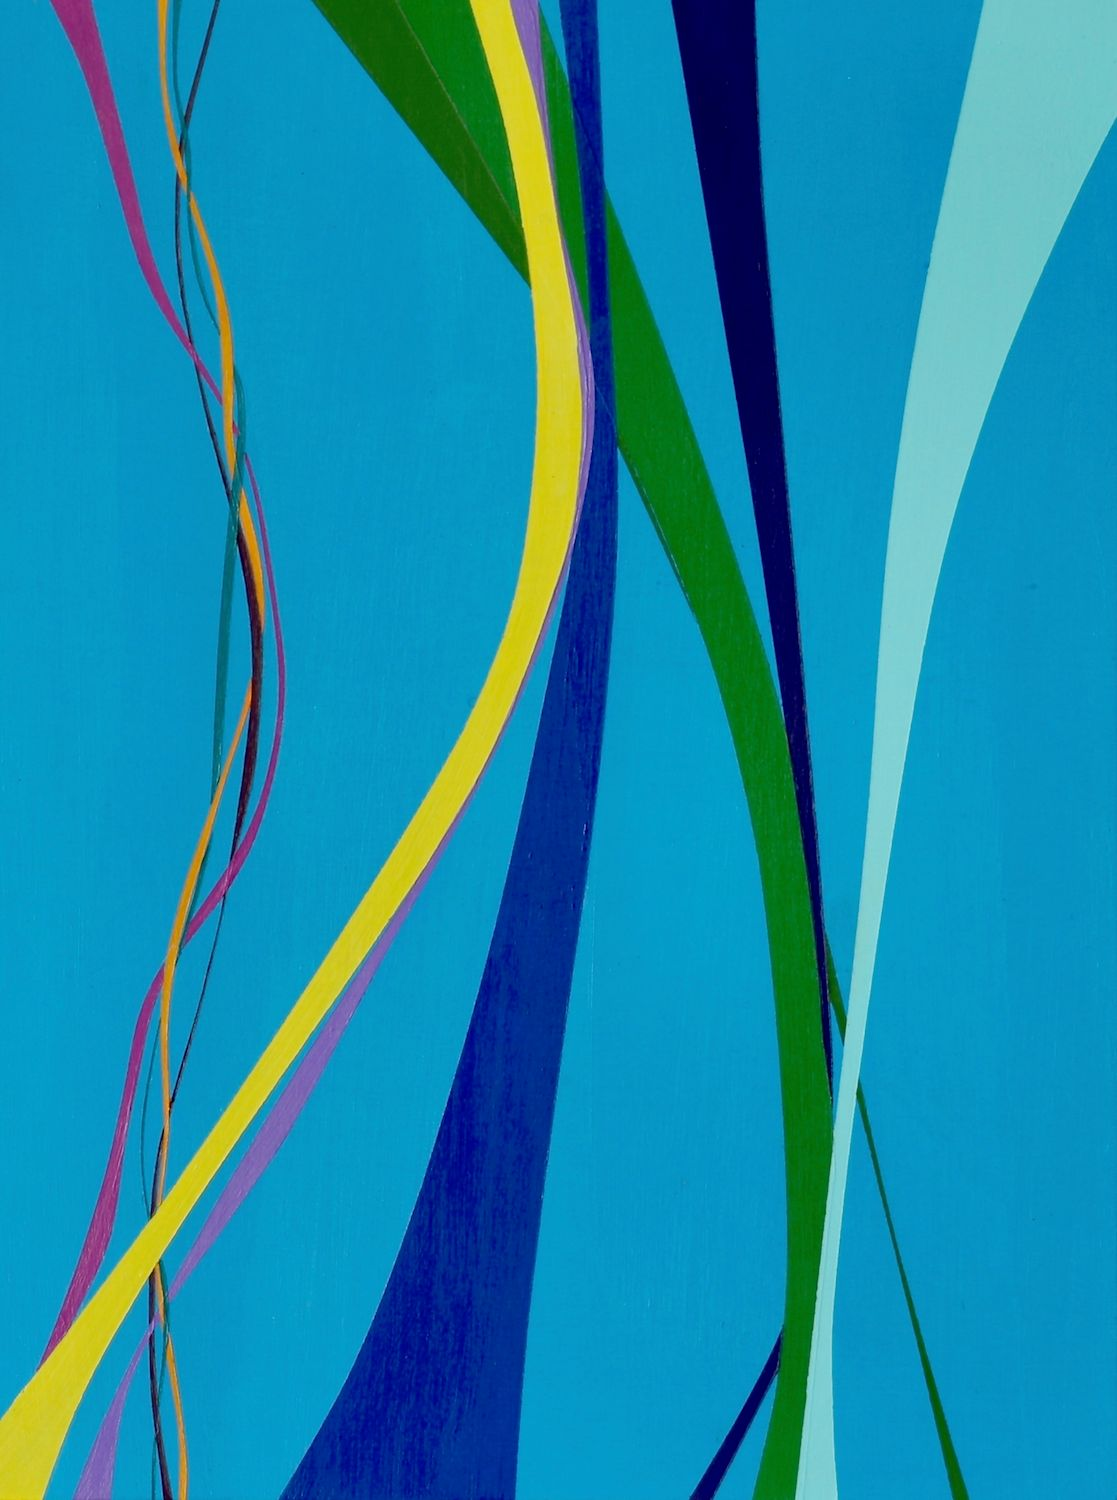 6_Alicia_Philley_Blue Skies, Twirling_Austin Art.jpg